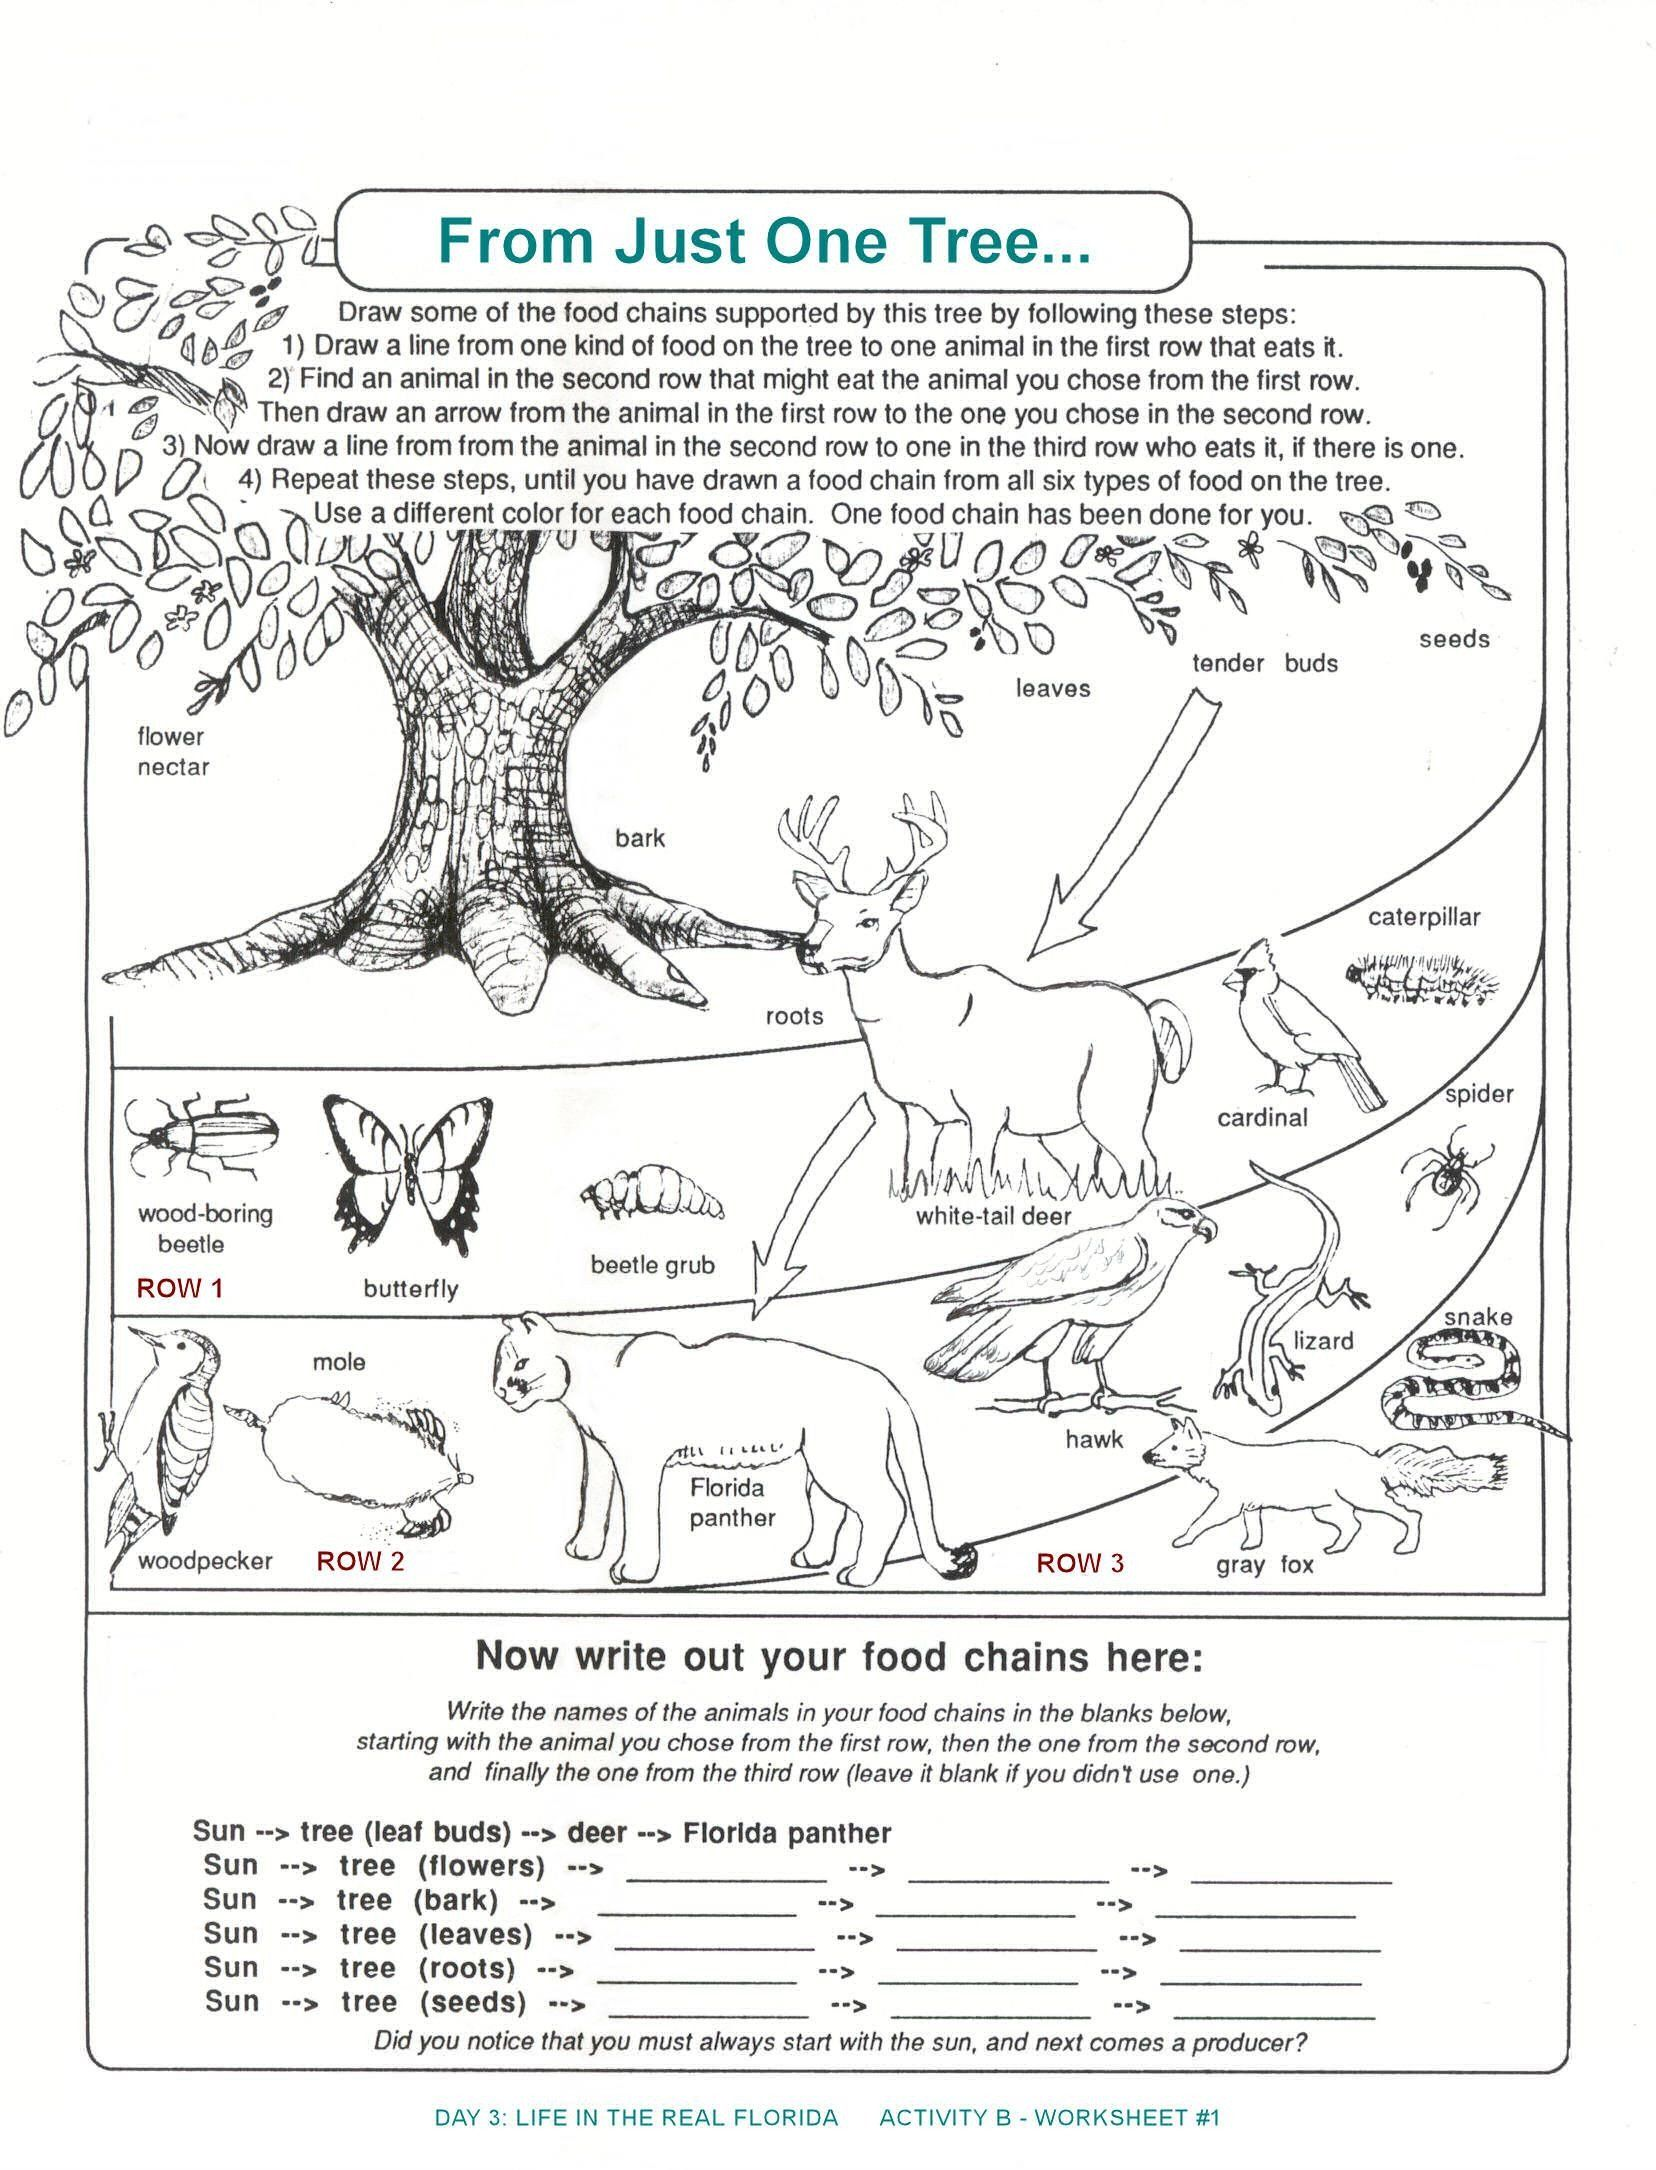 Producers And Consumers Worksheet Florida Food Chain Worksheet From Just One Tree With Science Worksheets Food Chain Biology Worksheet